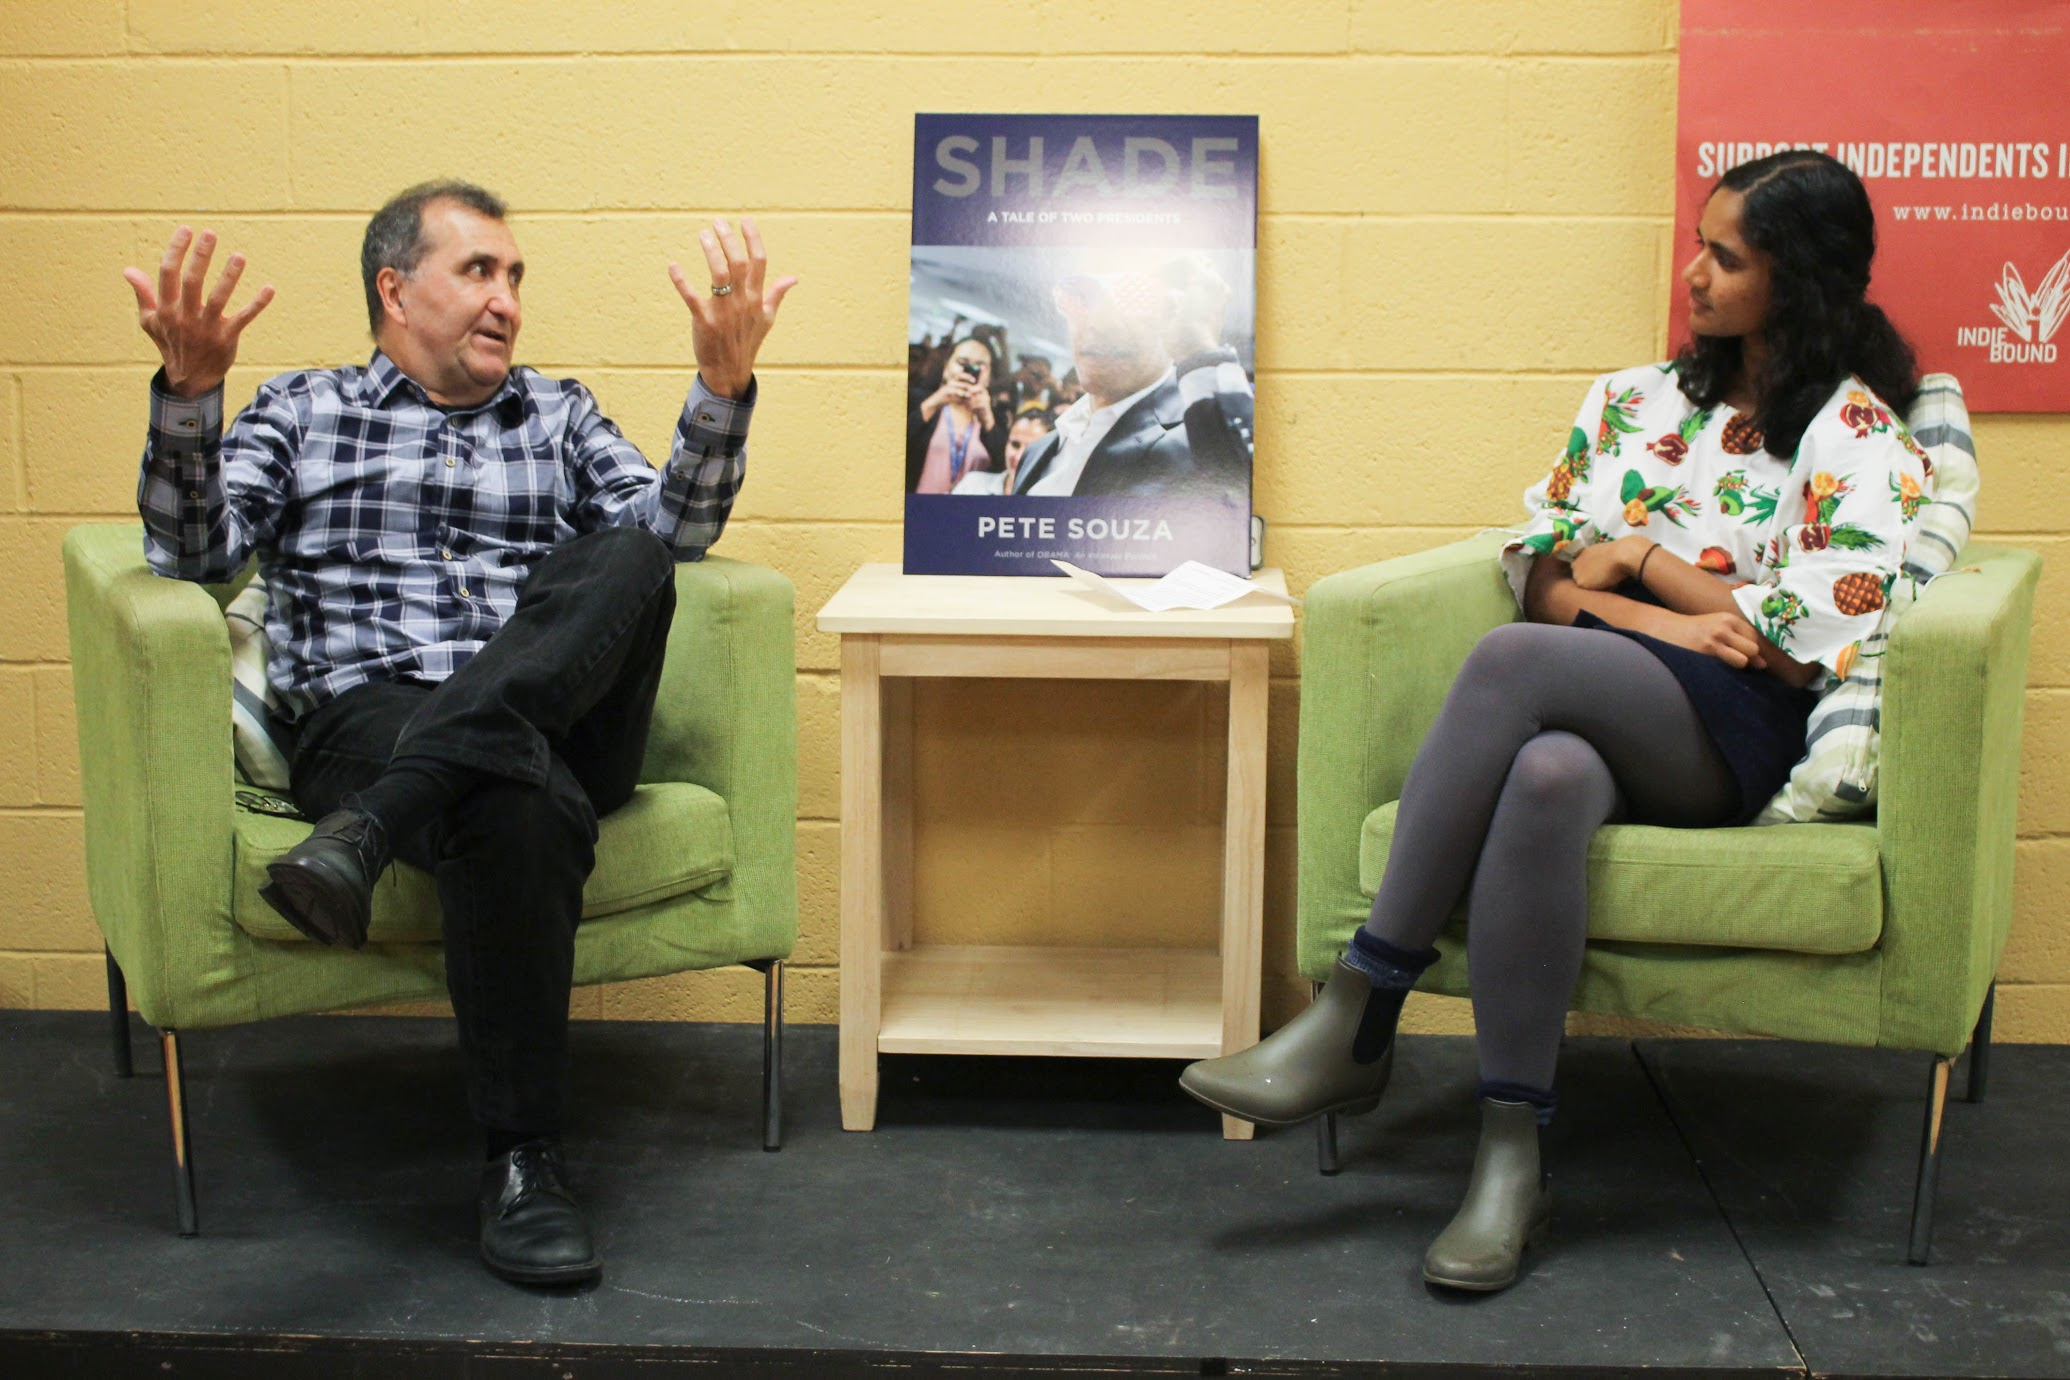 Pete Souza, former White House Photographer for Presidents Ronald Reagan and Barack Obama, with Managing Editor Meghana Srikrishna (Image: Blythe Gulley)